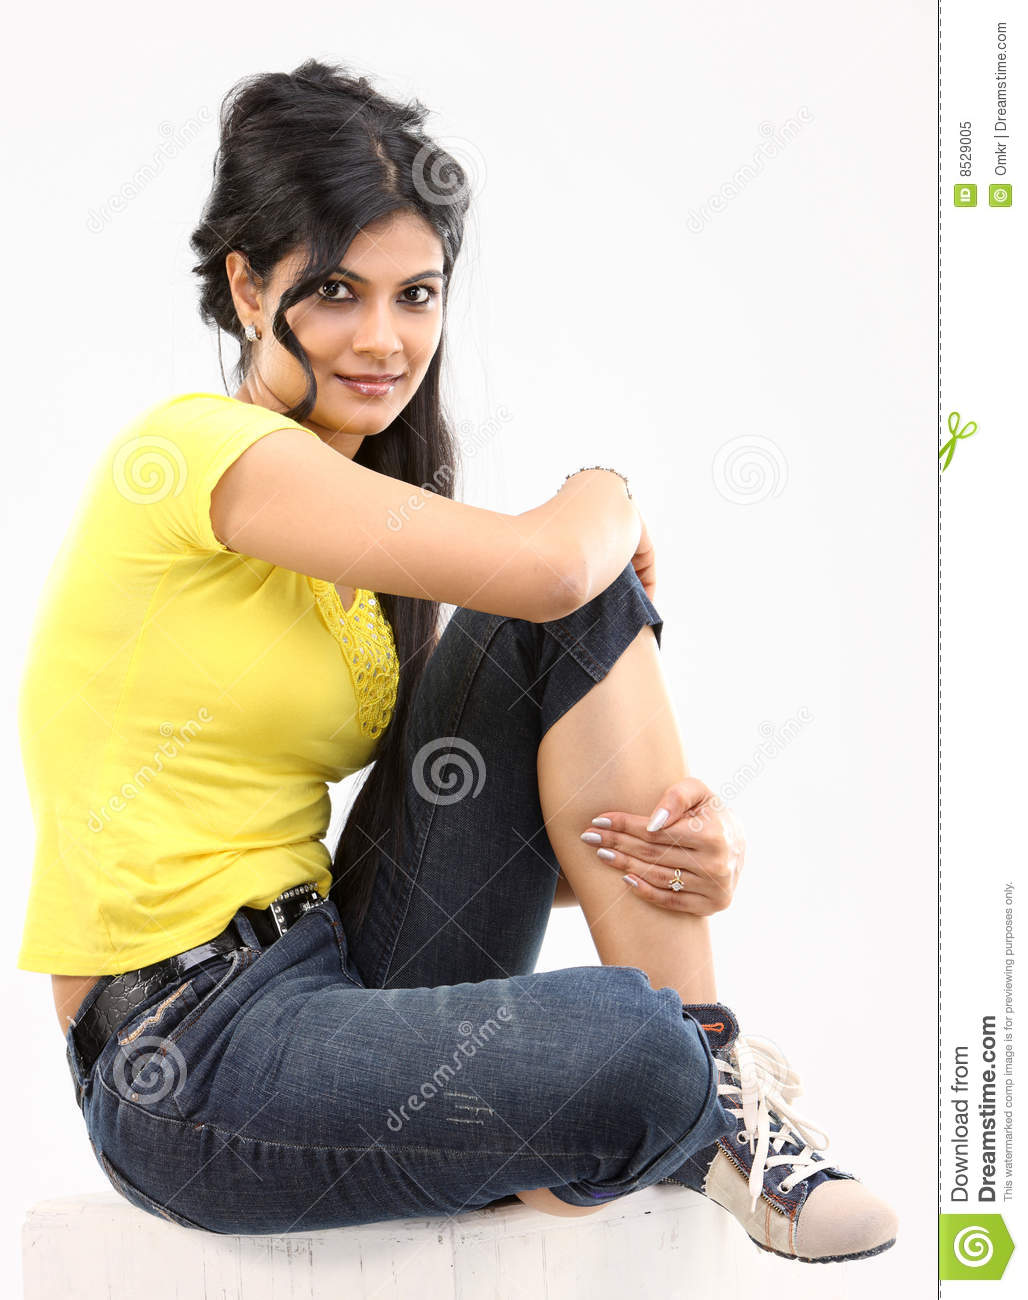 Relaxing Colours Teenage Girl Posing Sitting On The Floor Royalty Free